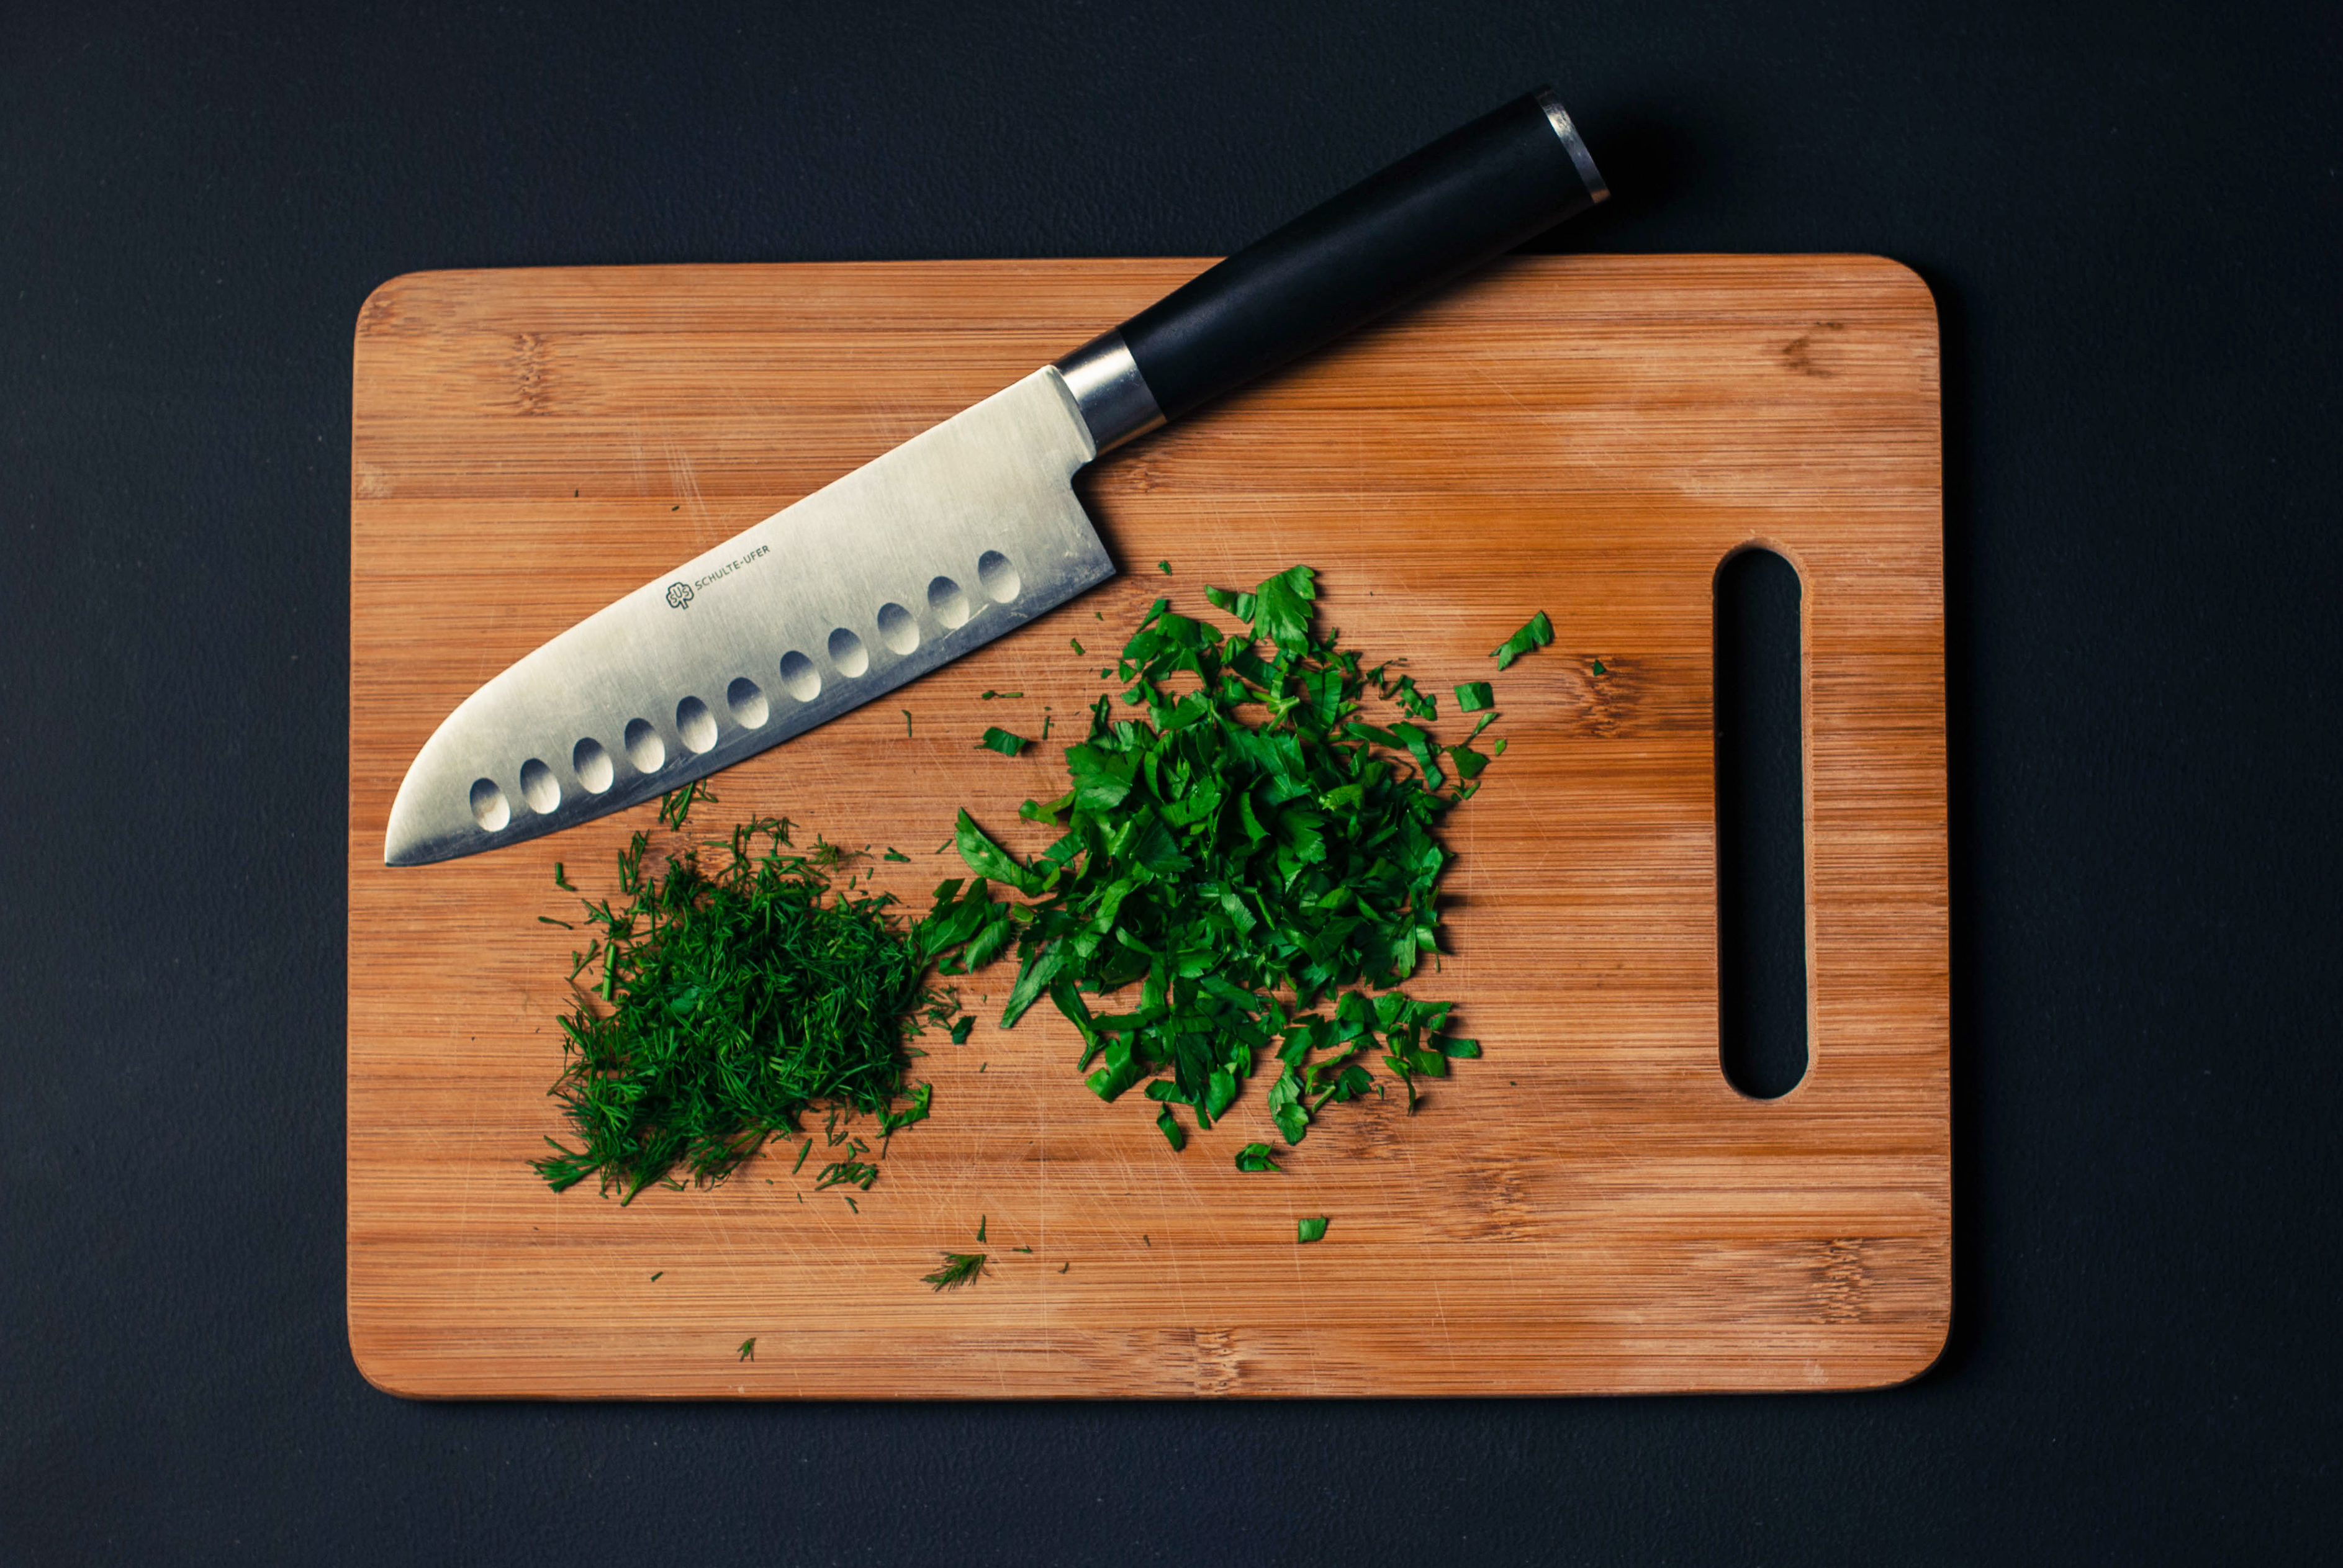 free stock photos of cutting board · pexels, Kitchen design